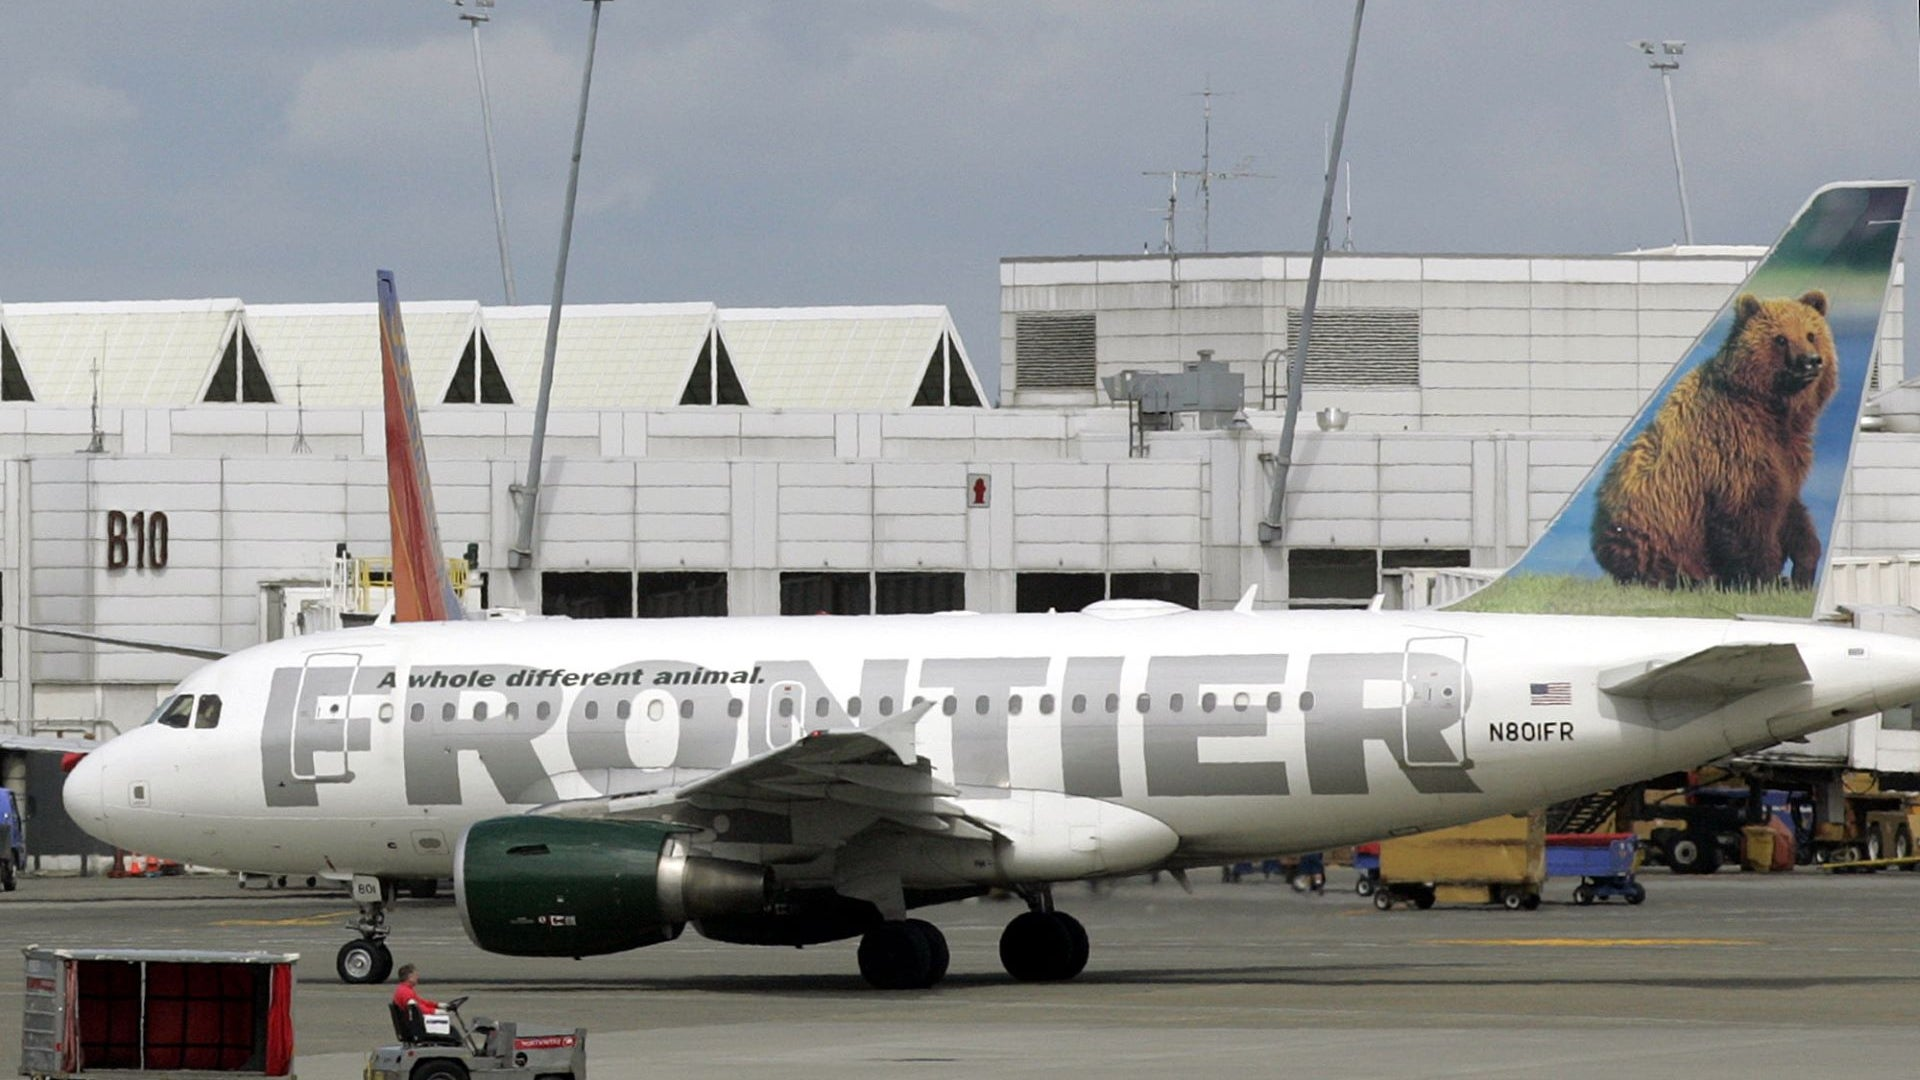 Frontier Airlines set to fly from New York Stewart International Airport to Florida this fall